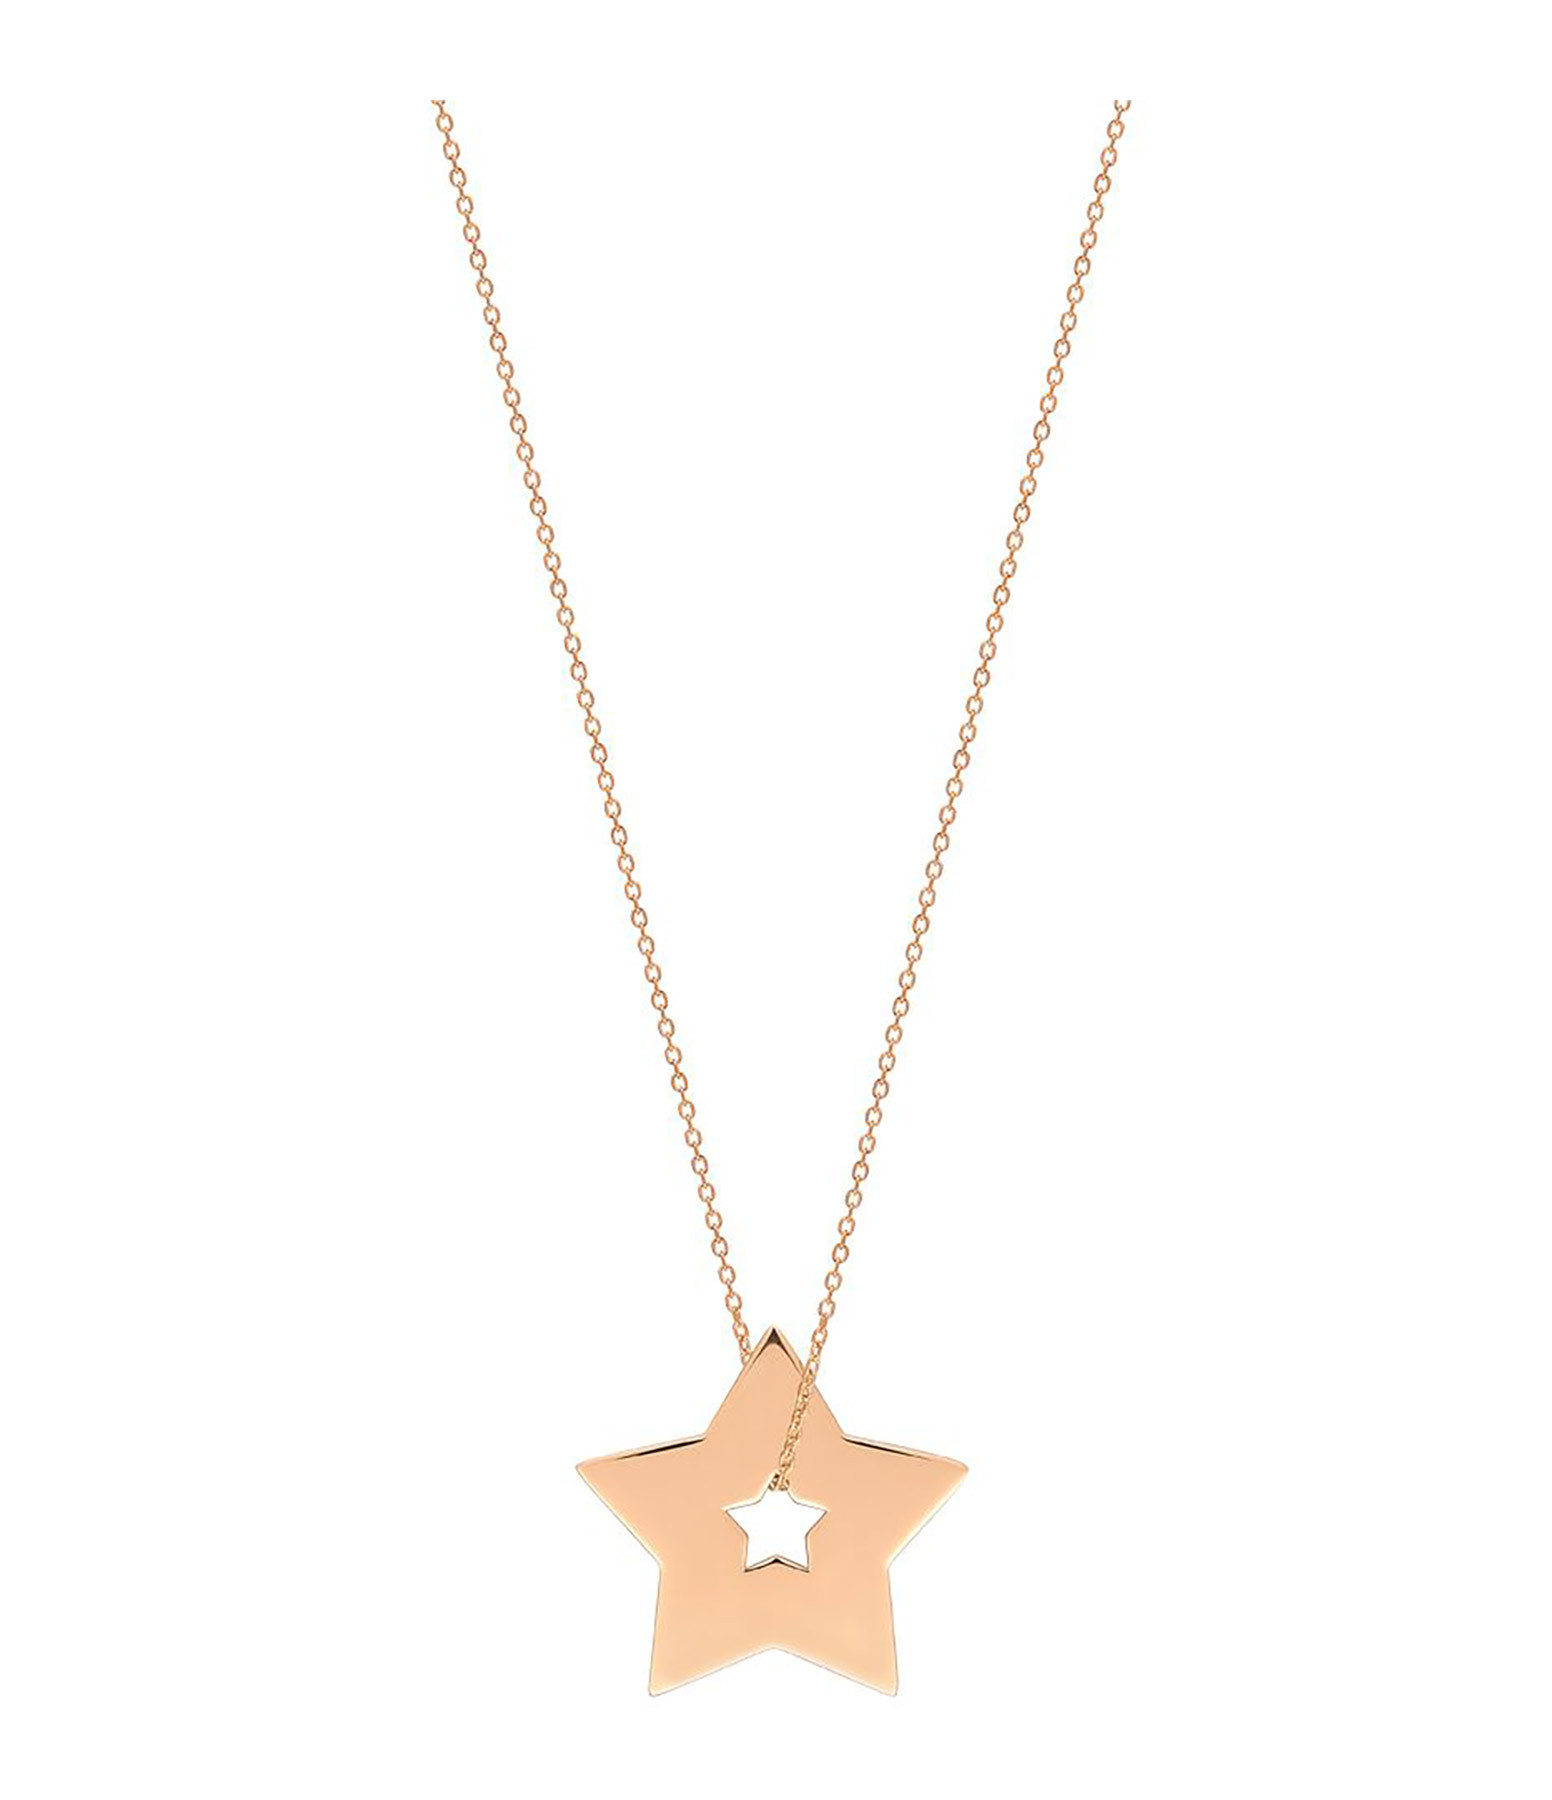 GINETTE_NY - Collier Milky Way Etoile Or Rose